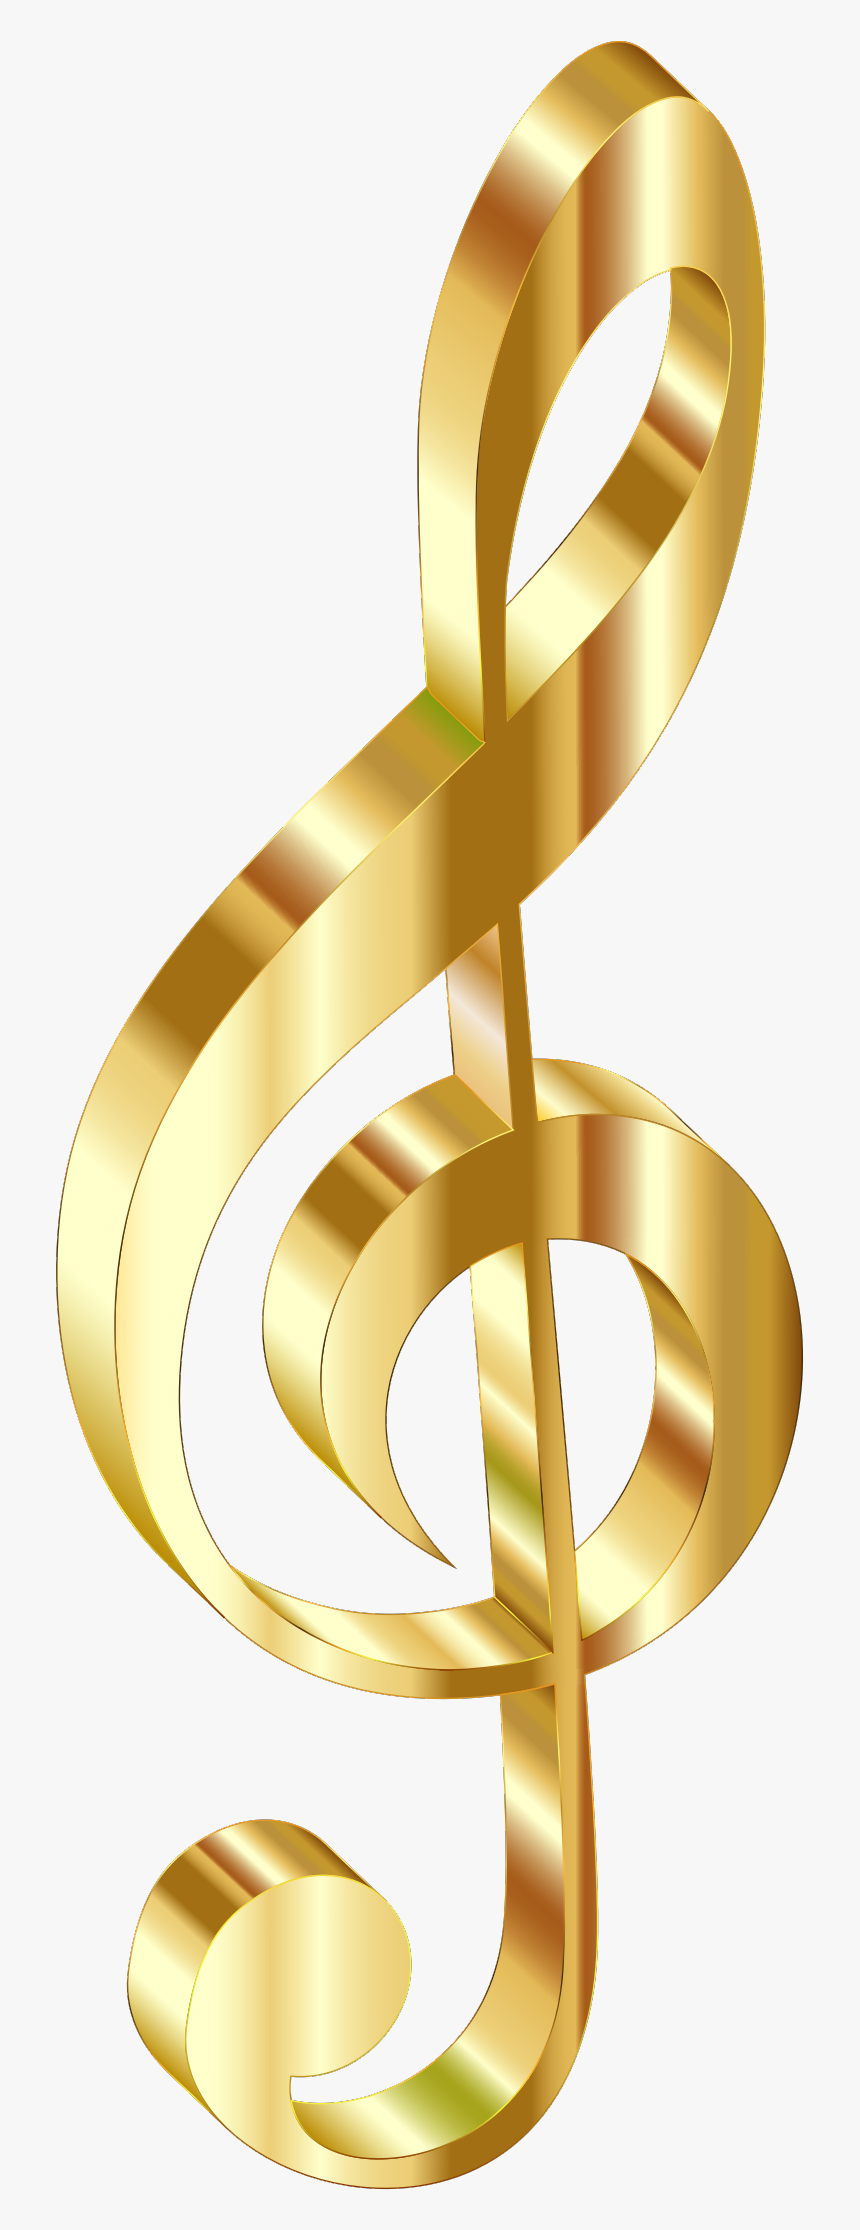 Clip Art Jpg Library Download - Gold Music Note Transparent Background, HD Png Download, Free Download